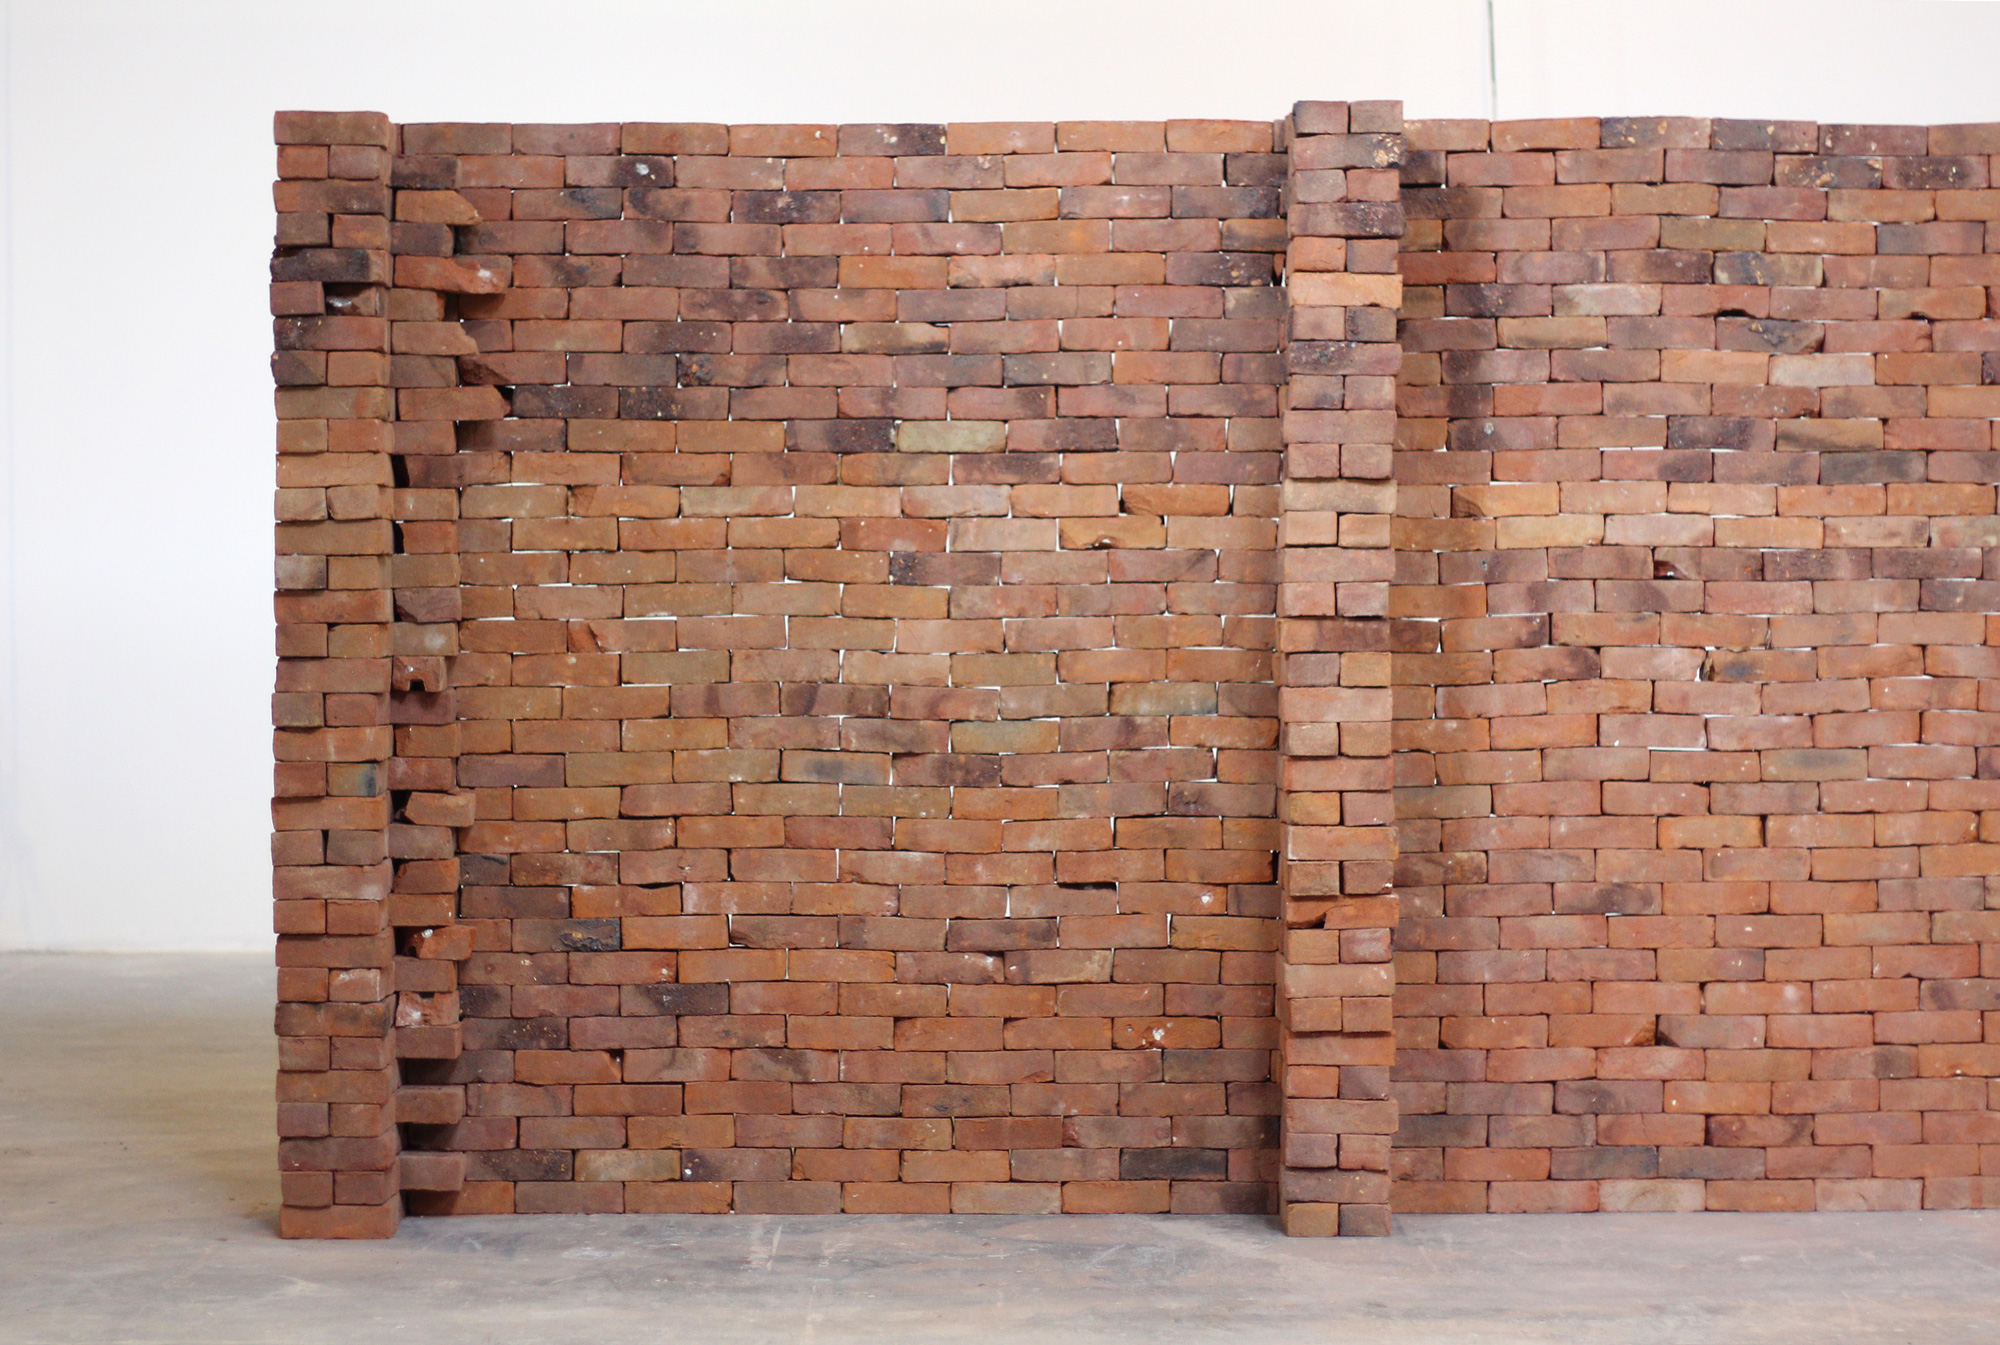 A Single Book Disrupts the Foundation of a Brick Wall by Jorge Mendez Blake